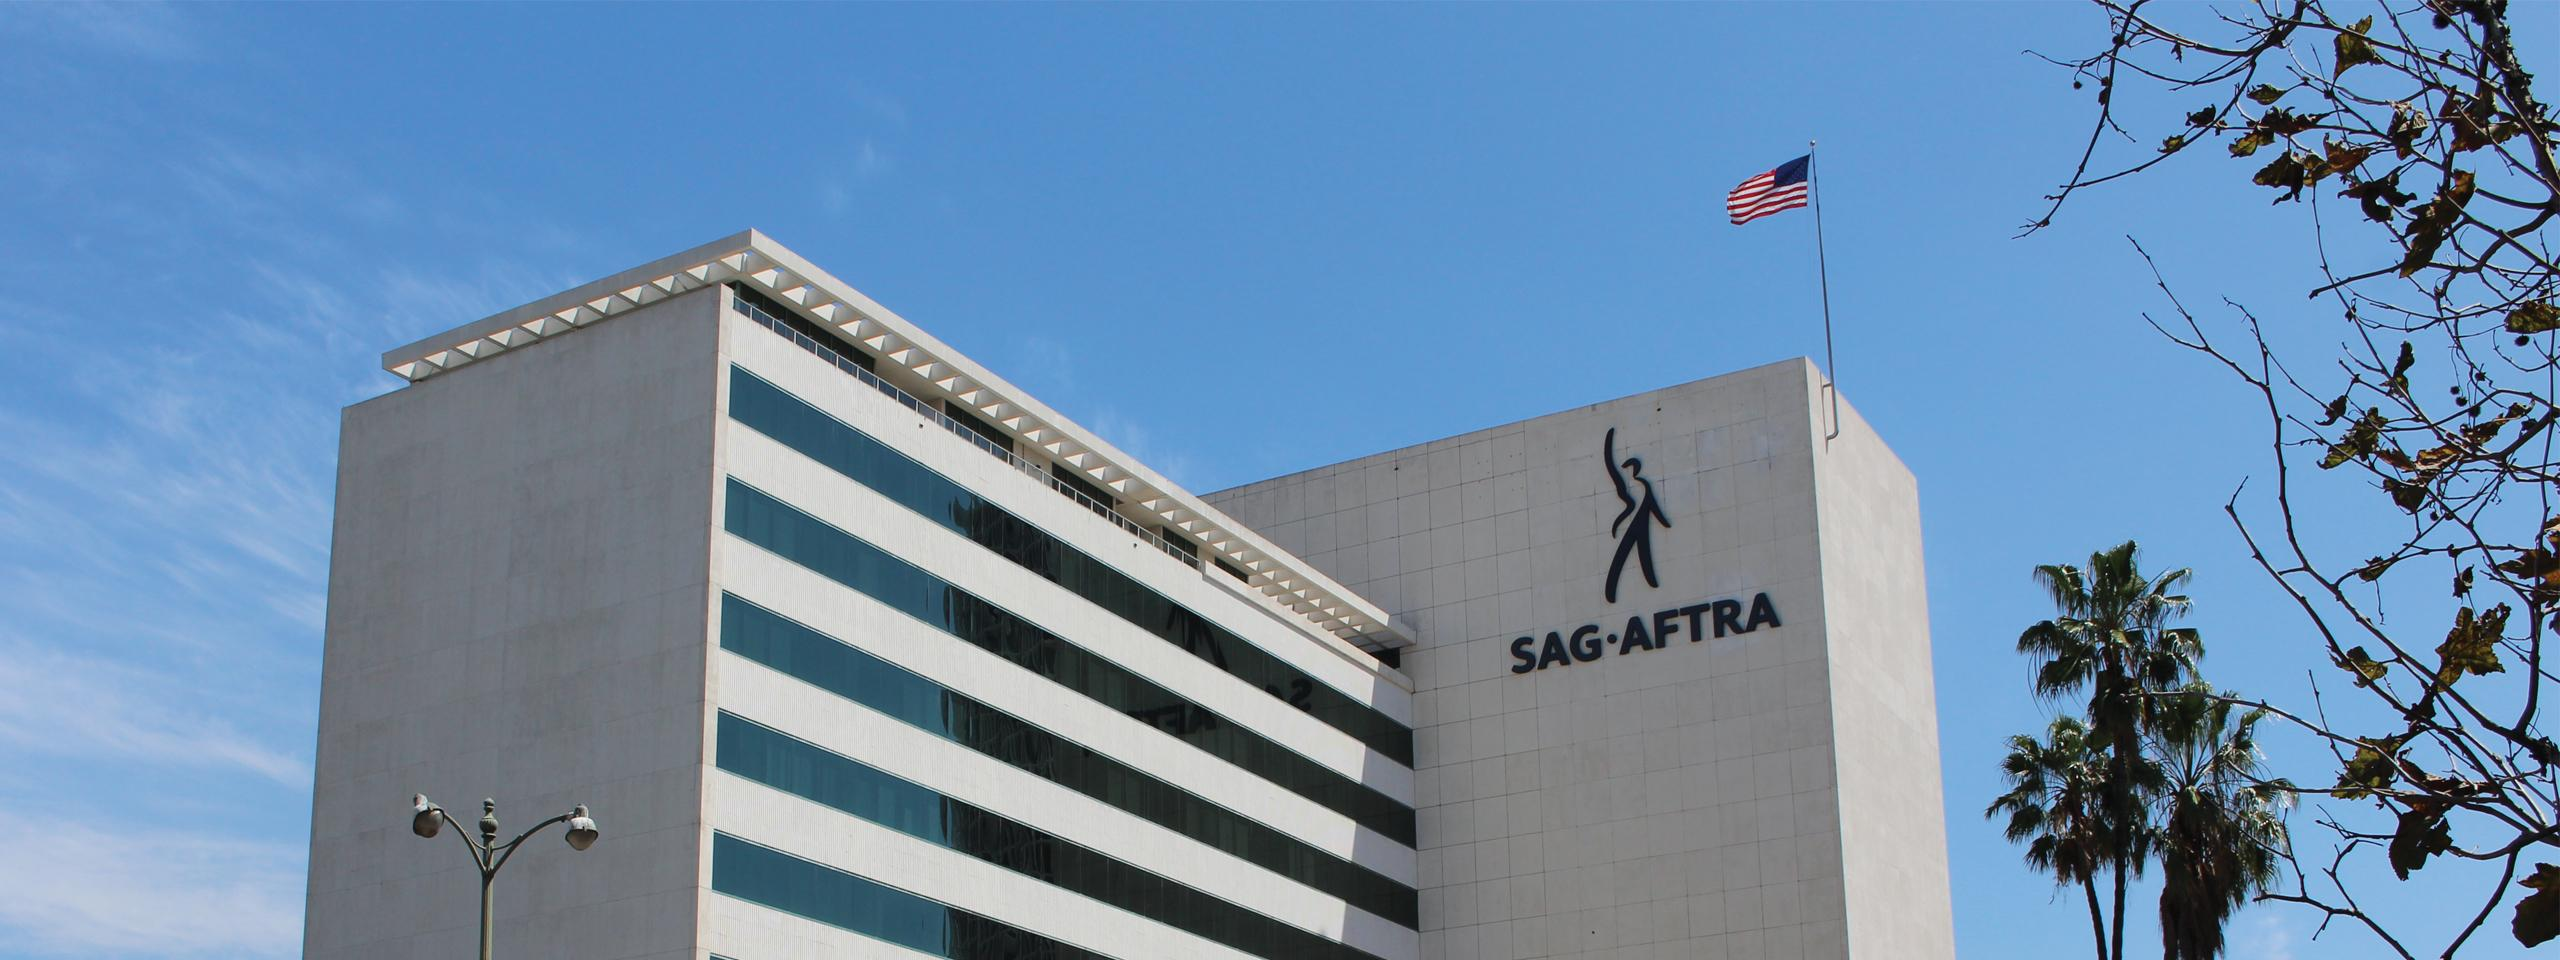 SAG-AFTRA's logo displayed on the SAG-AFTRA Plaza building in Los Angeles.